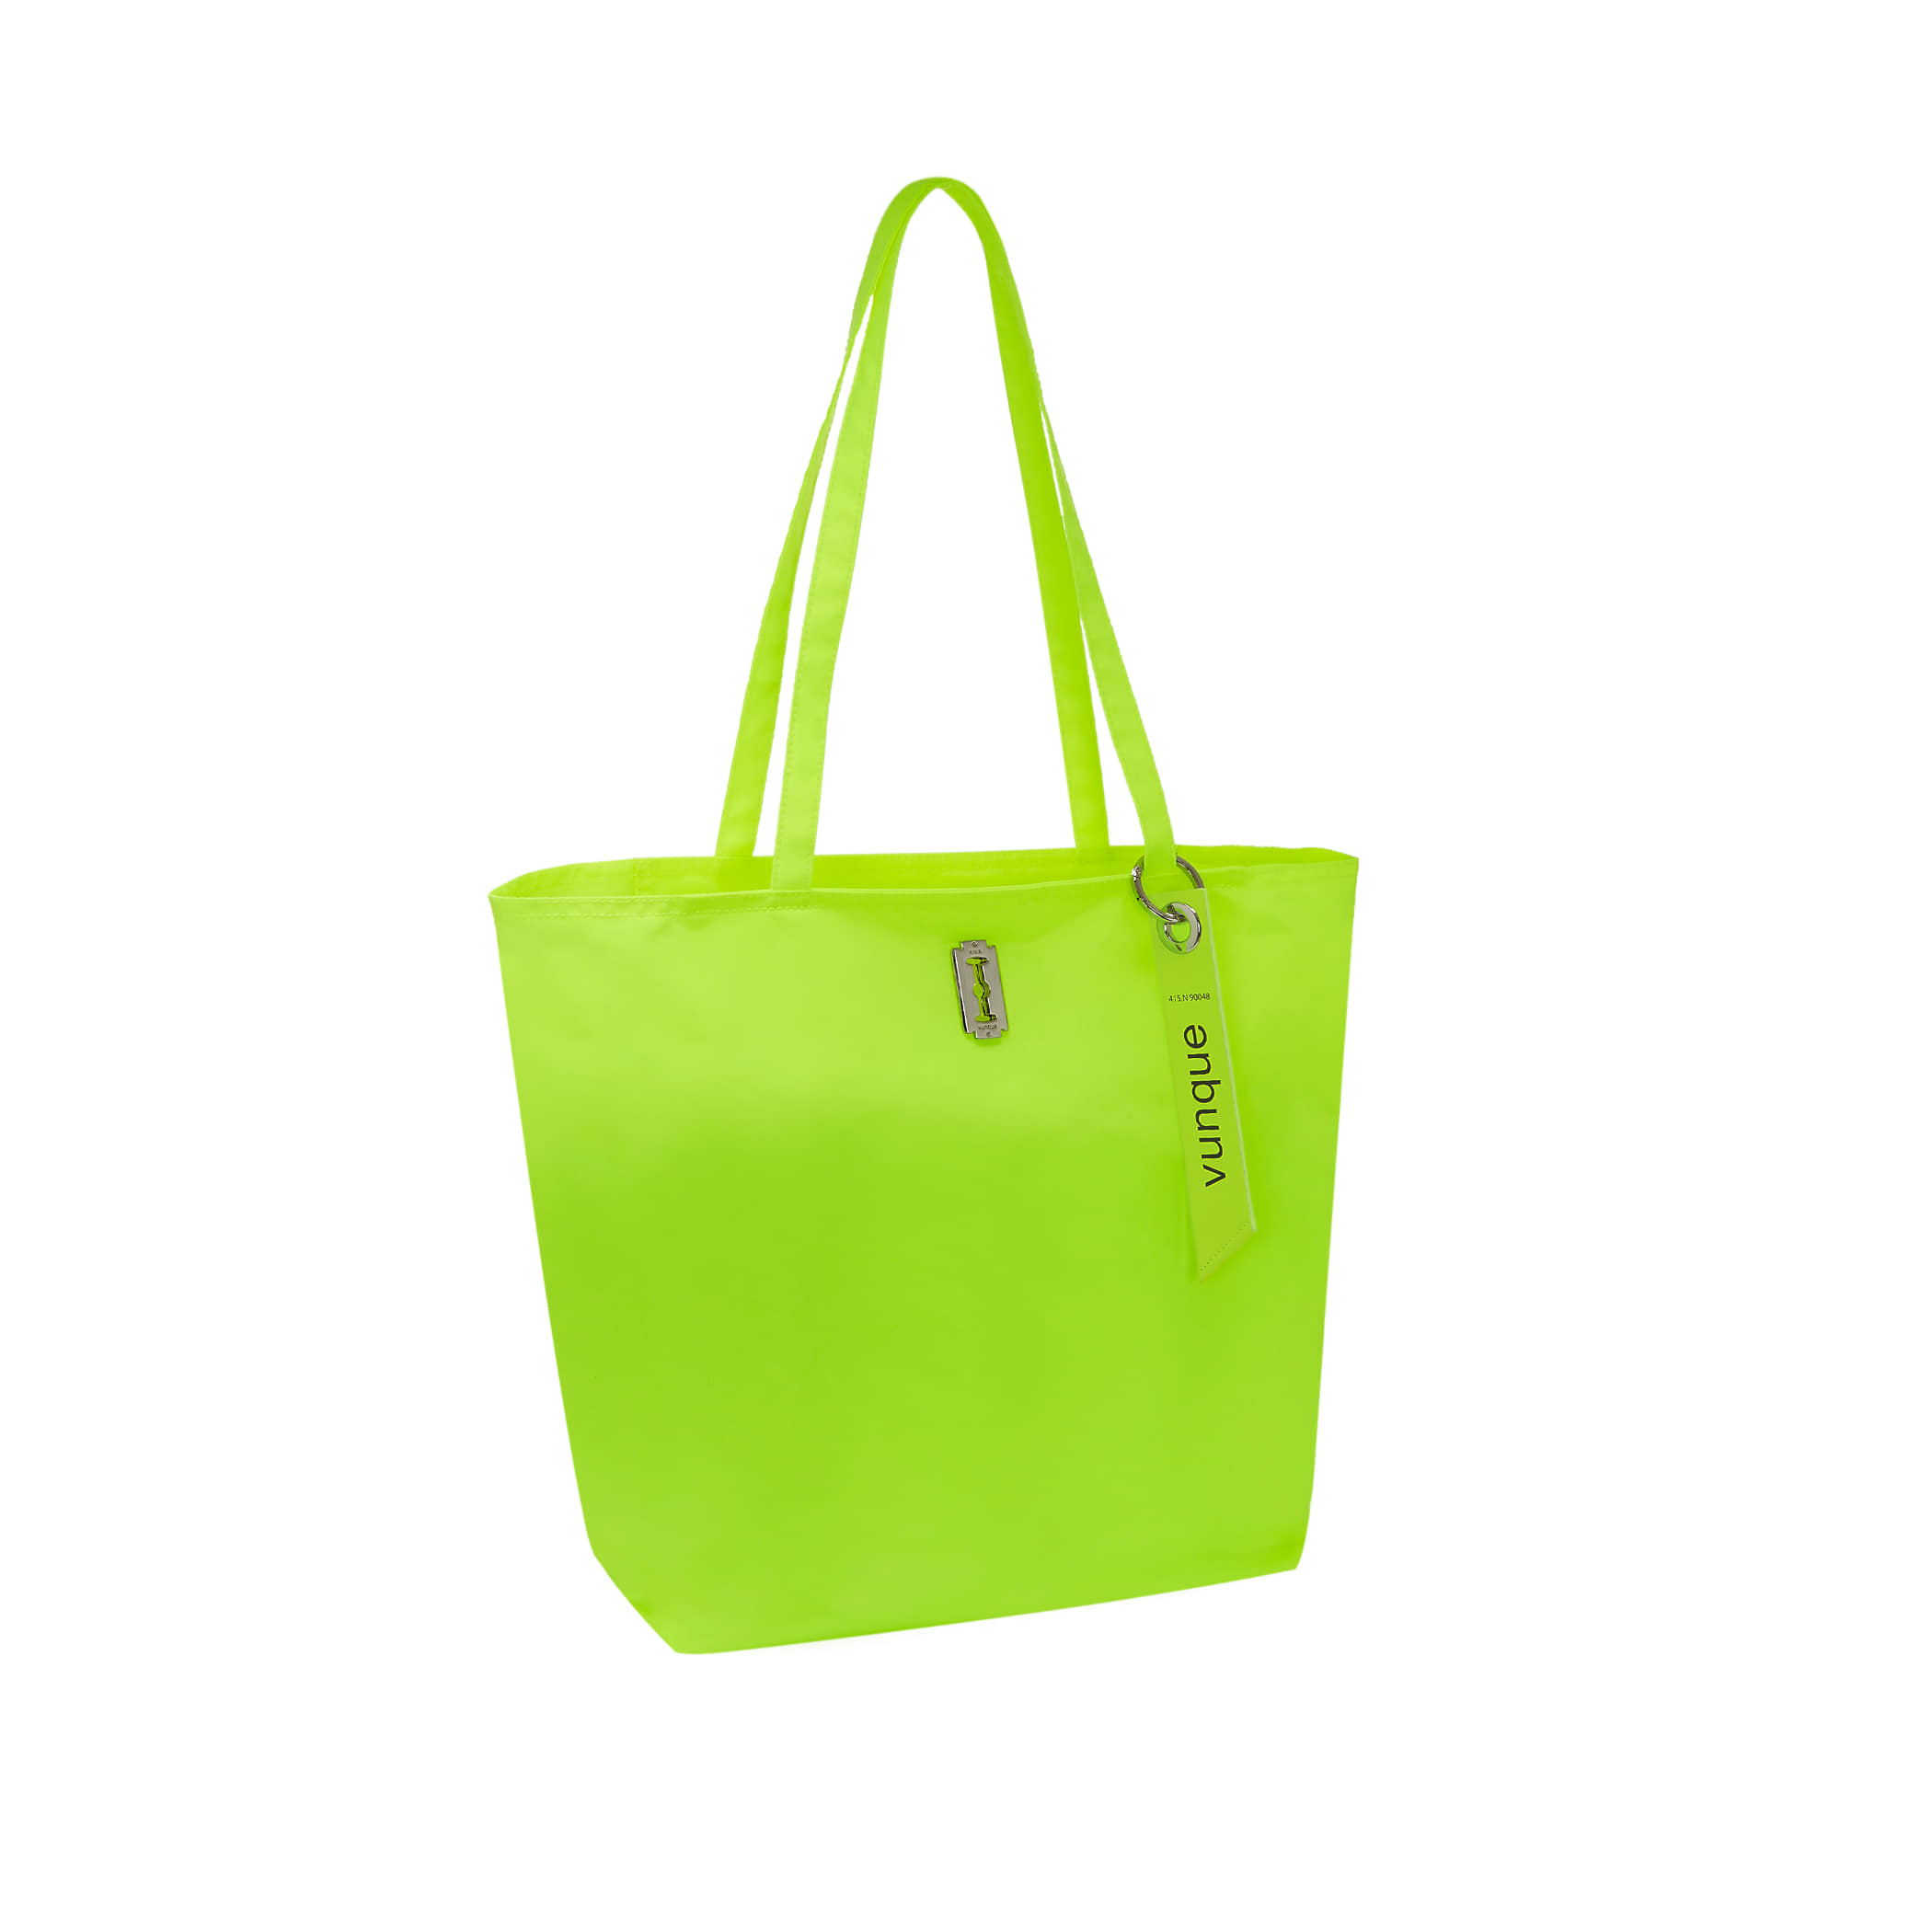 Hey Pass Shopper Bag (헤이 패스 쇼퍼백) Neon yellow